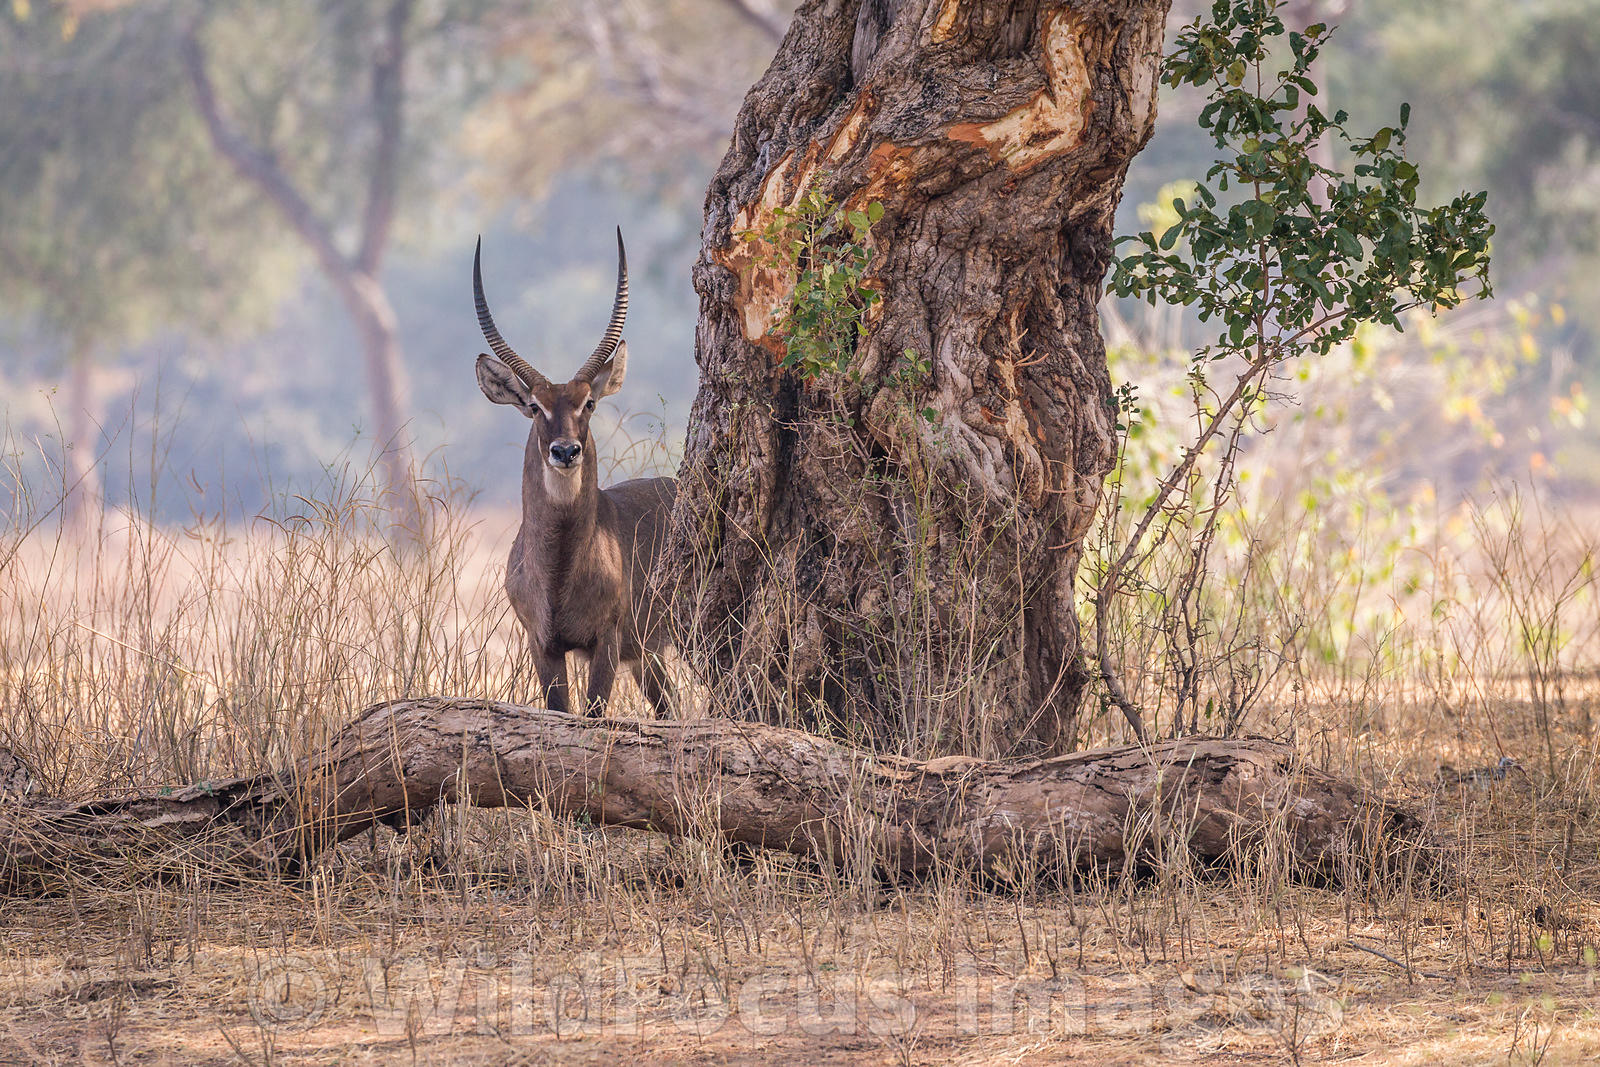 Male Waterbuck (Kobus ellipsiprymnus) at Chine Pool, Mana Pools National Park, Zimbabwe; Landscape